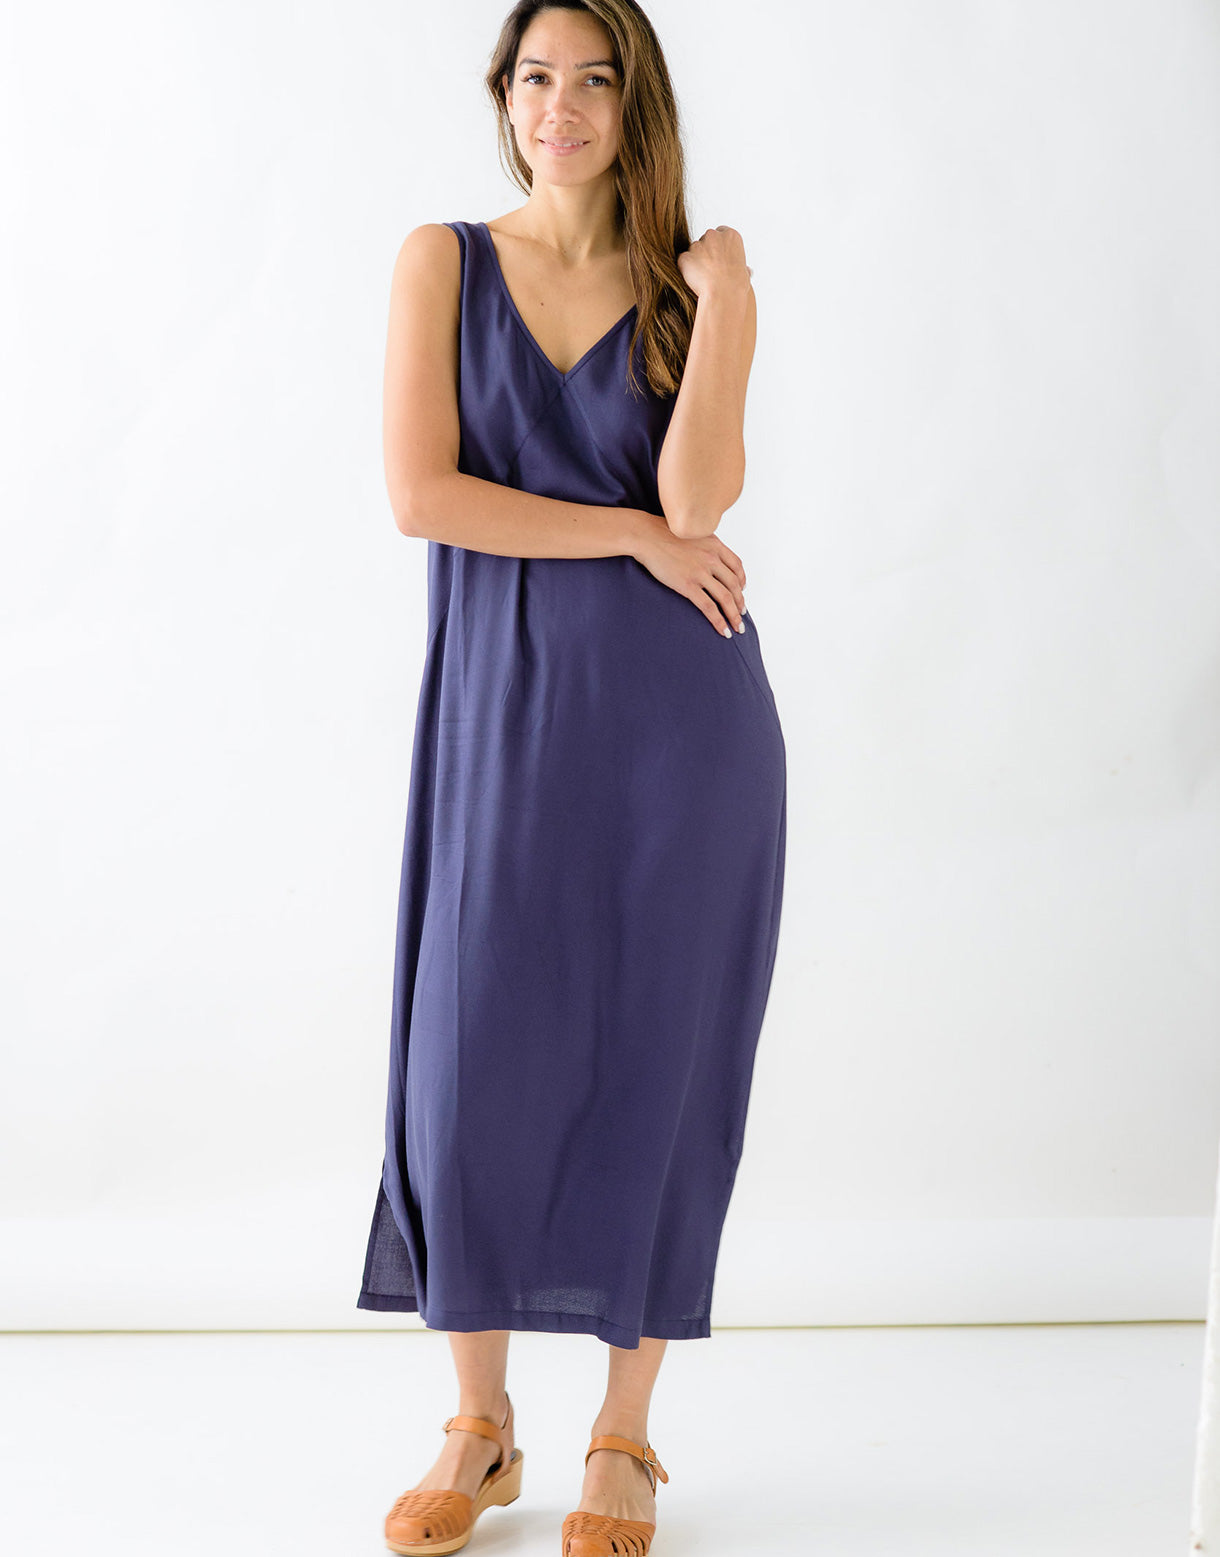 Ziggy Dress in Eclipse *sustainable viscose